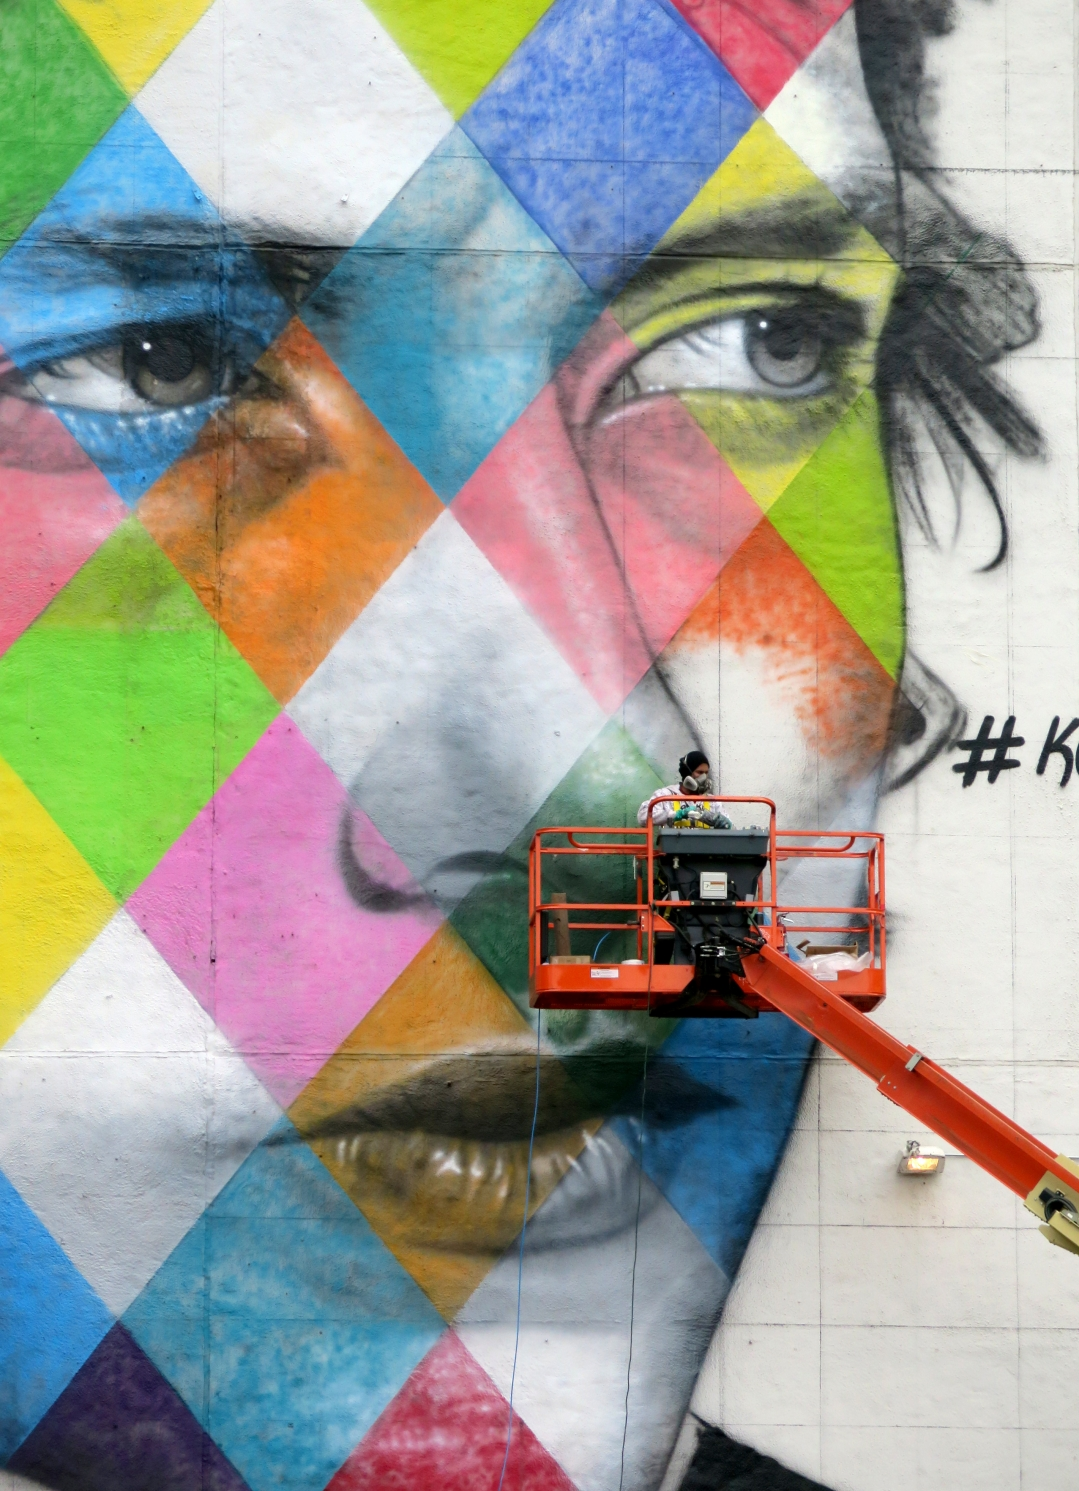 The 'canvas' for a mural by Brazillian artist Kobra- with multiple images of Bob Dylan.